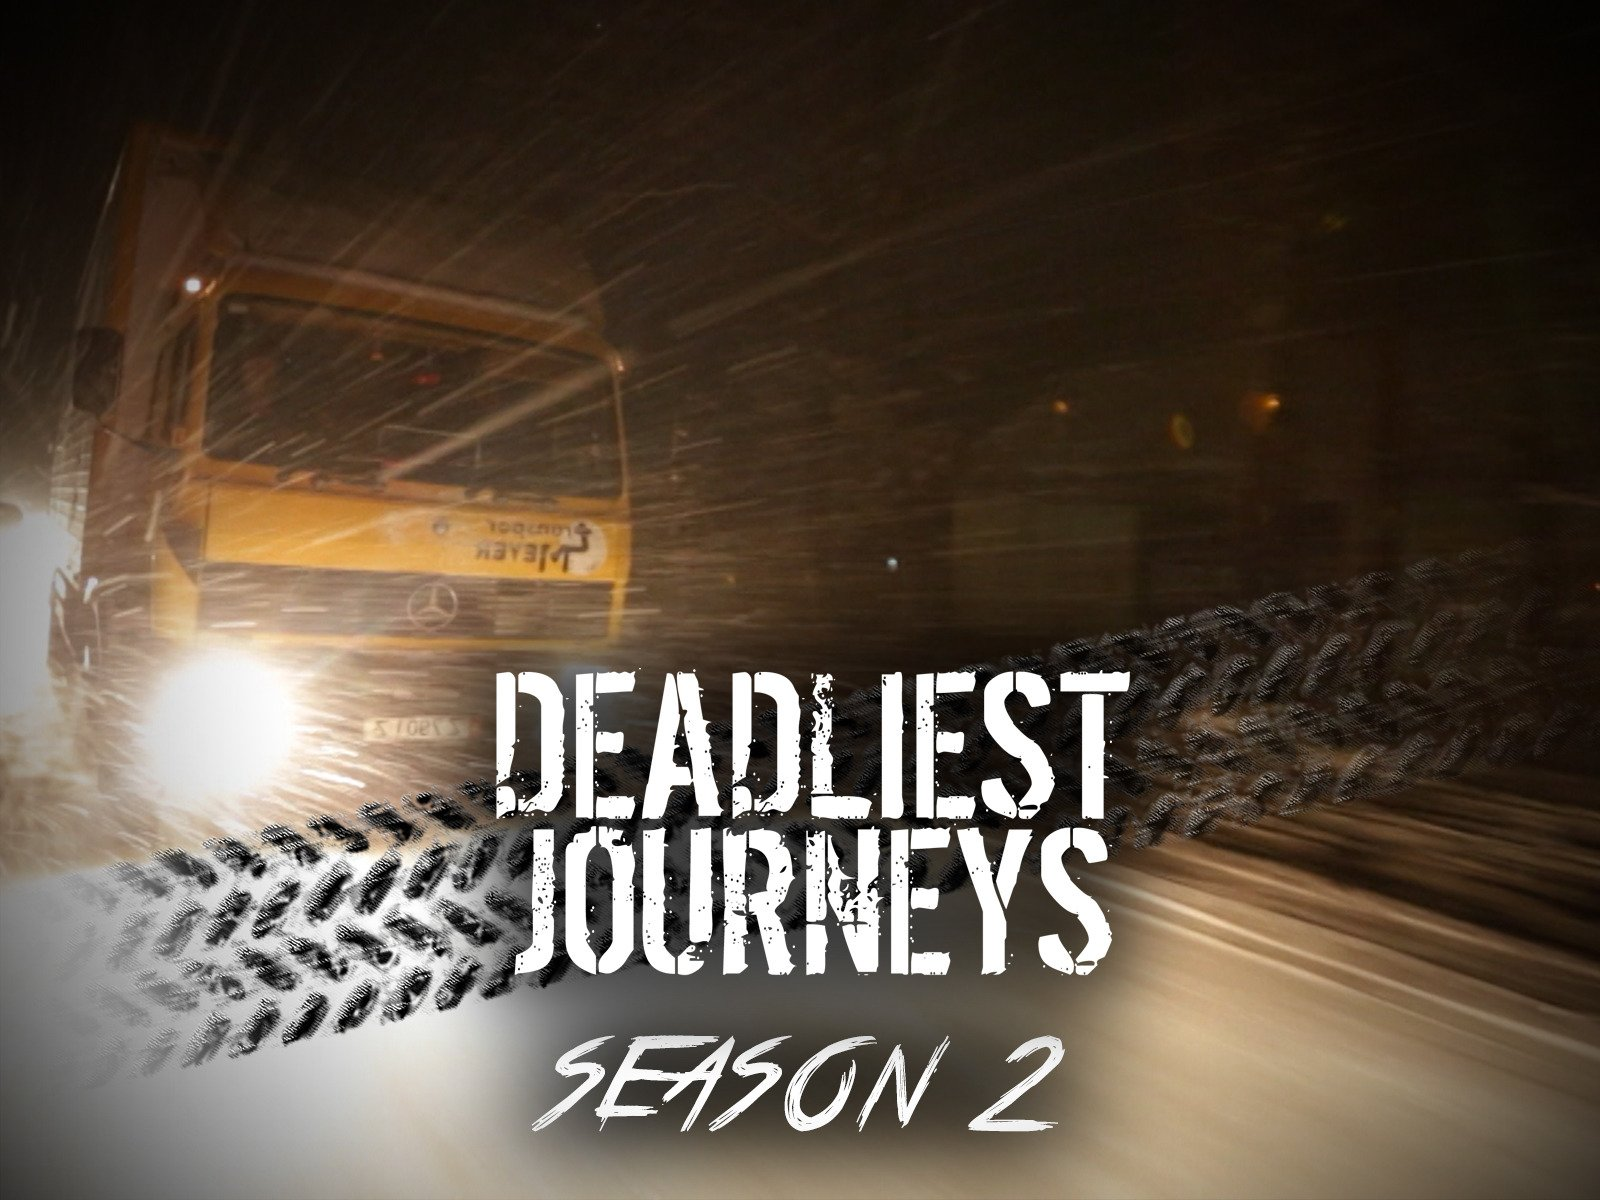 Deadliest Journeys - Season 2